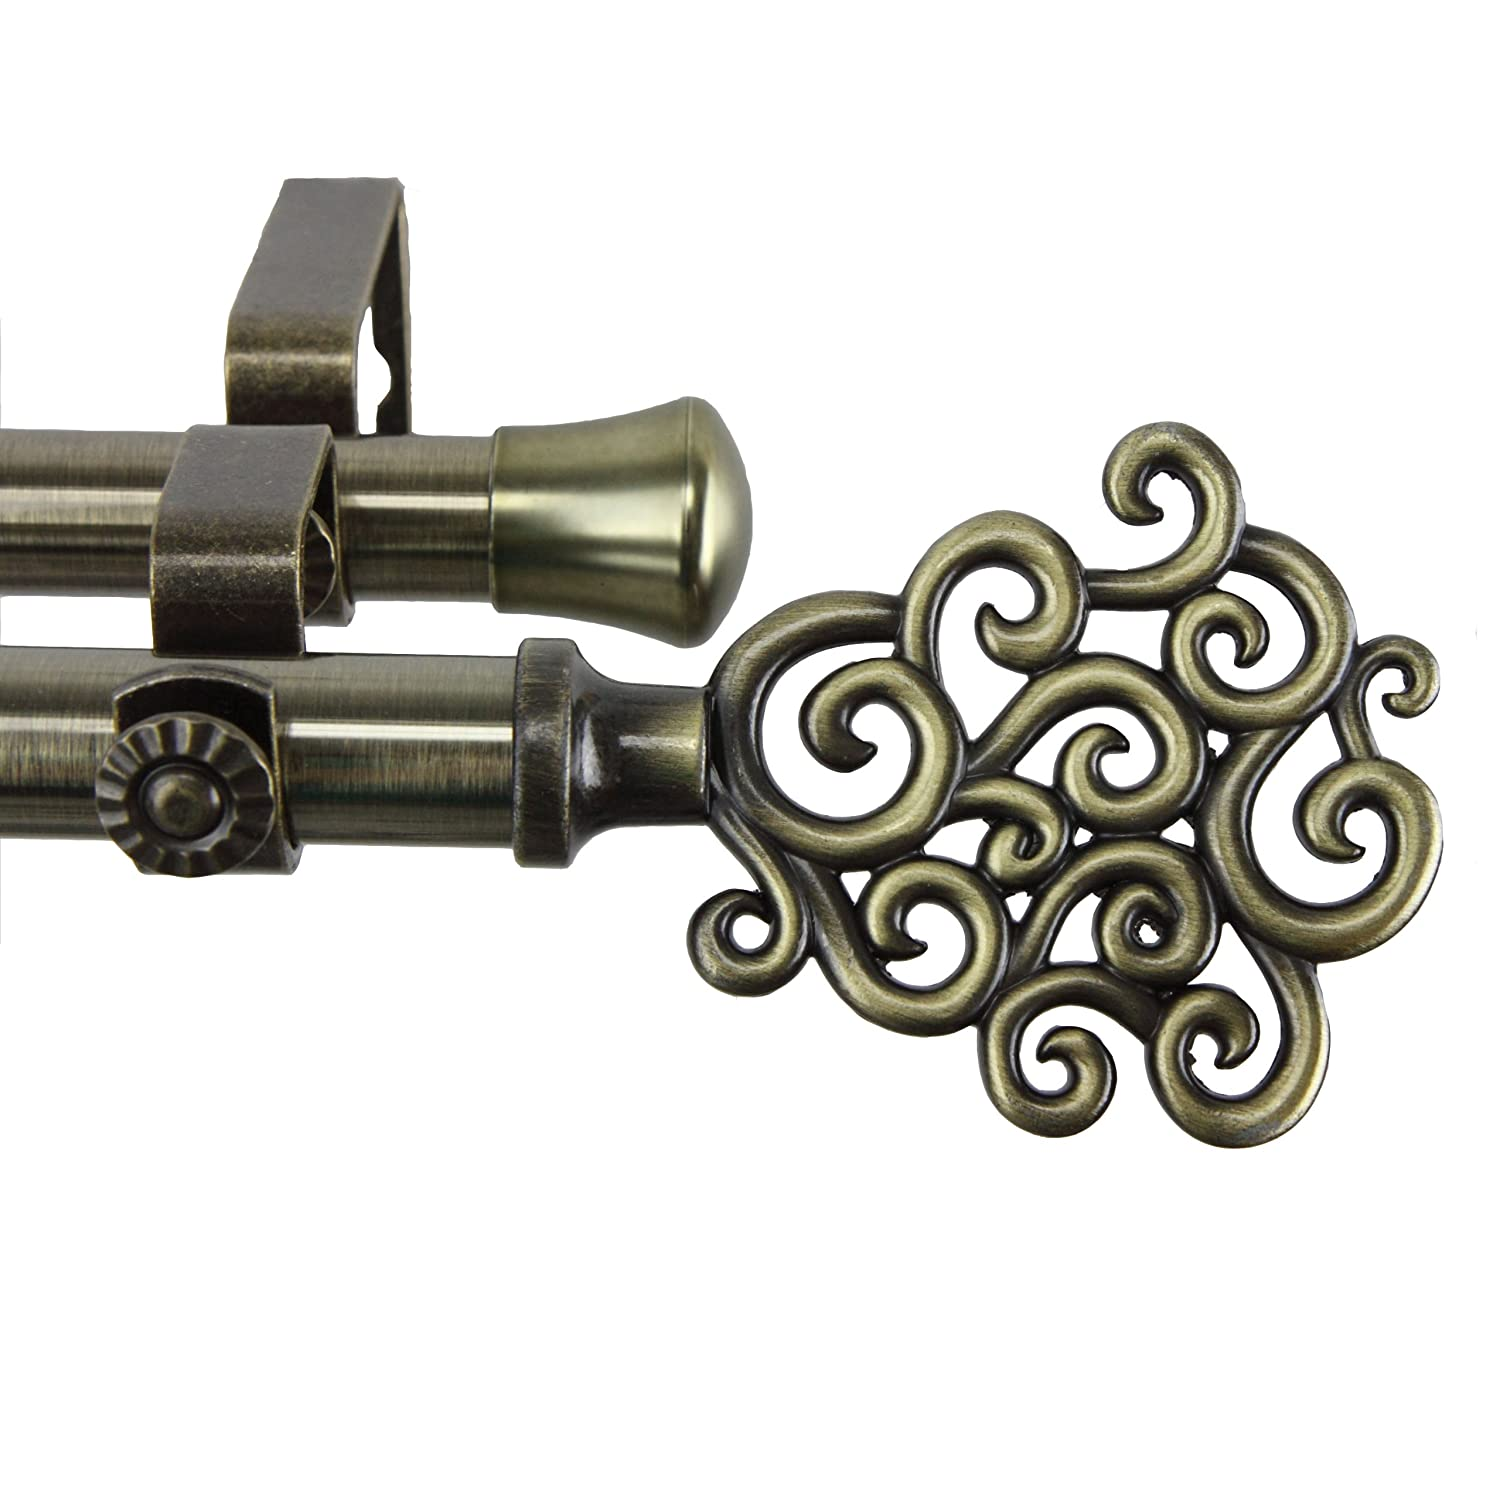 Tidal Double Curtain Rod 120-170 inch - Antique Brass 120-170-Inch アンティーク真鍮 B00ENGH6YU